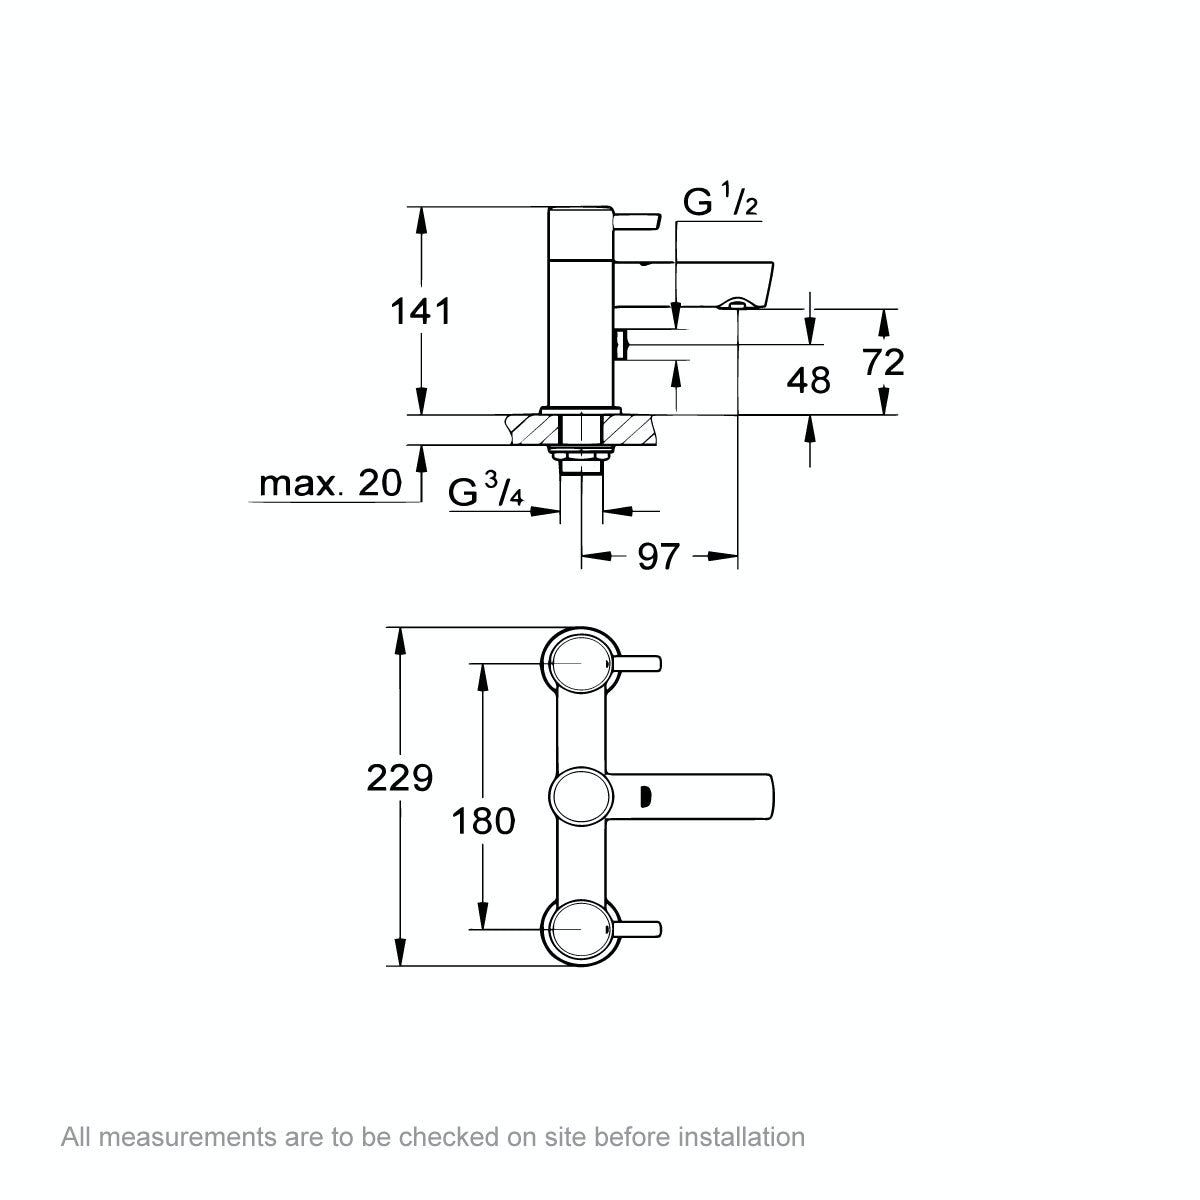 Dimensions for Grohe Concetto bath shower mixer tap